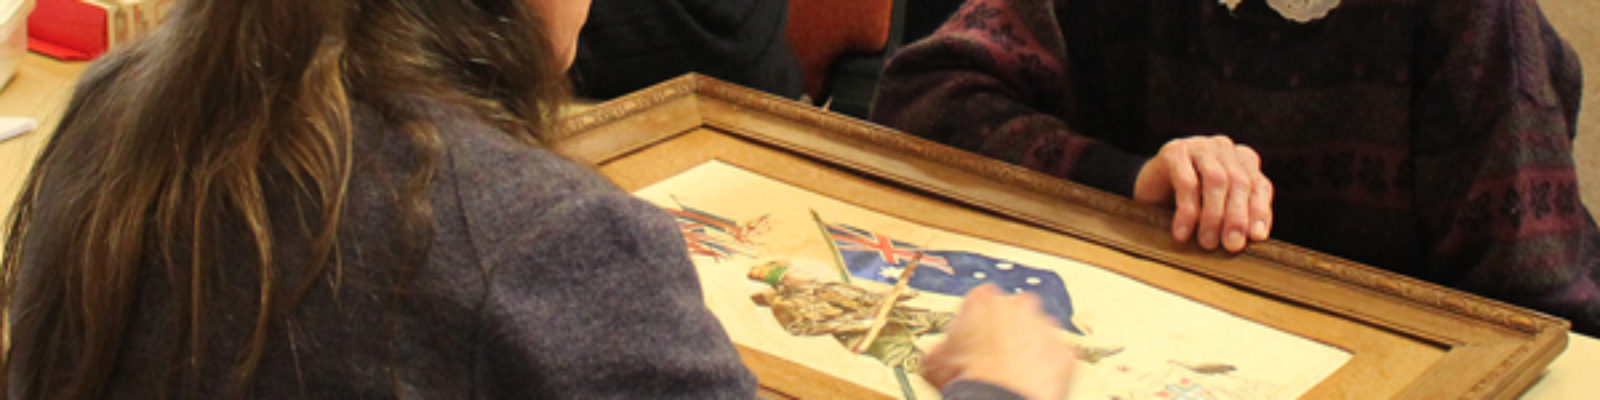 People around a table looking at a framed work.